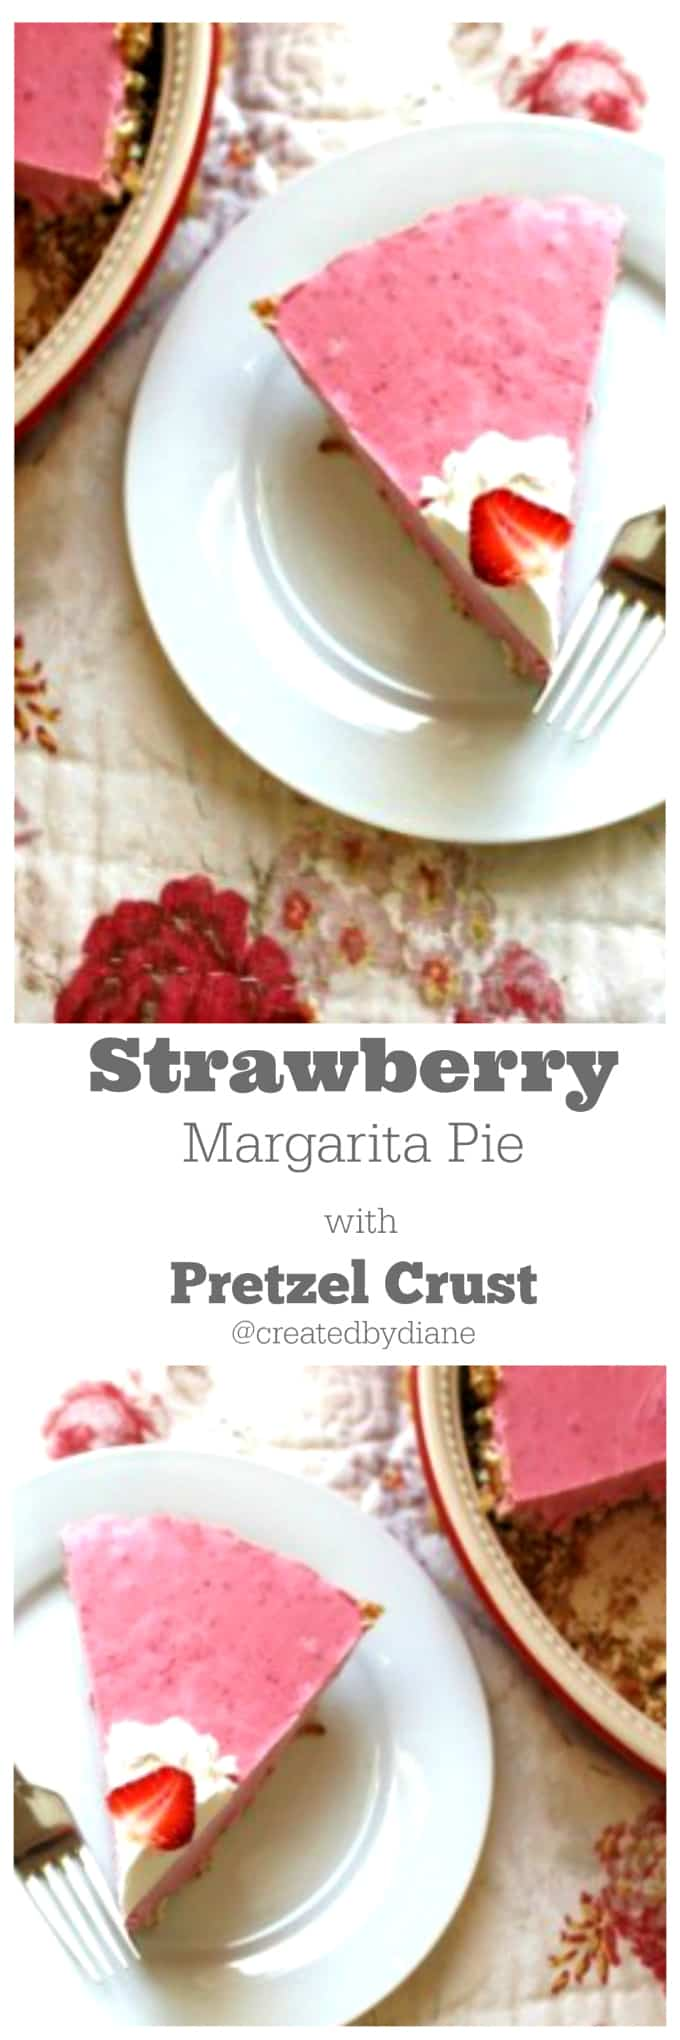 strawberry margarita pie @createdbydiane